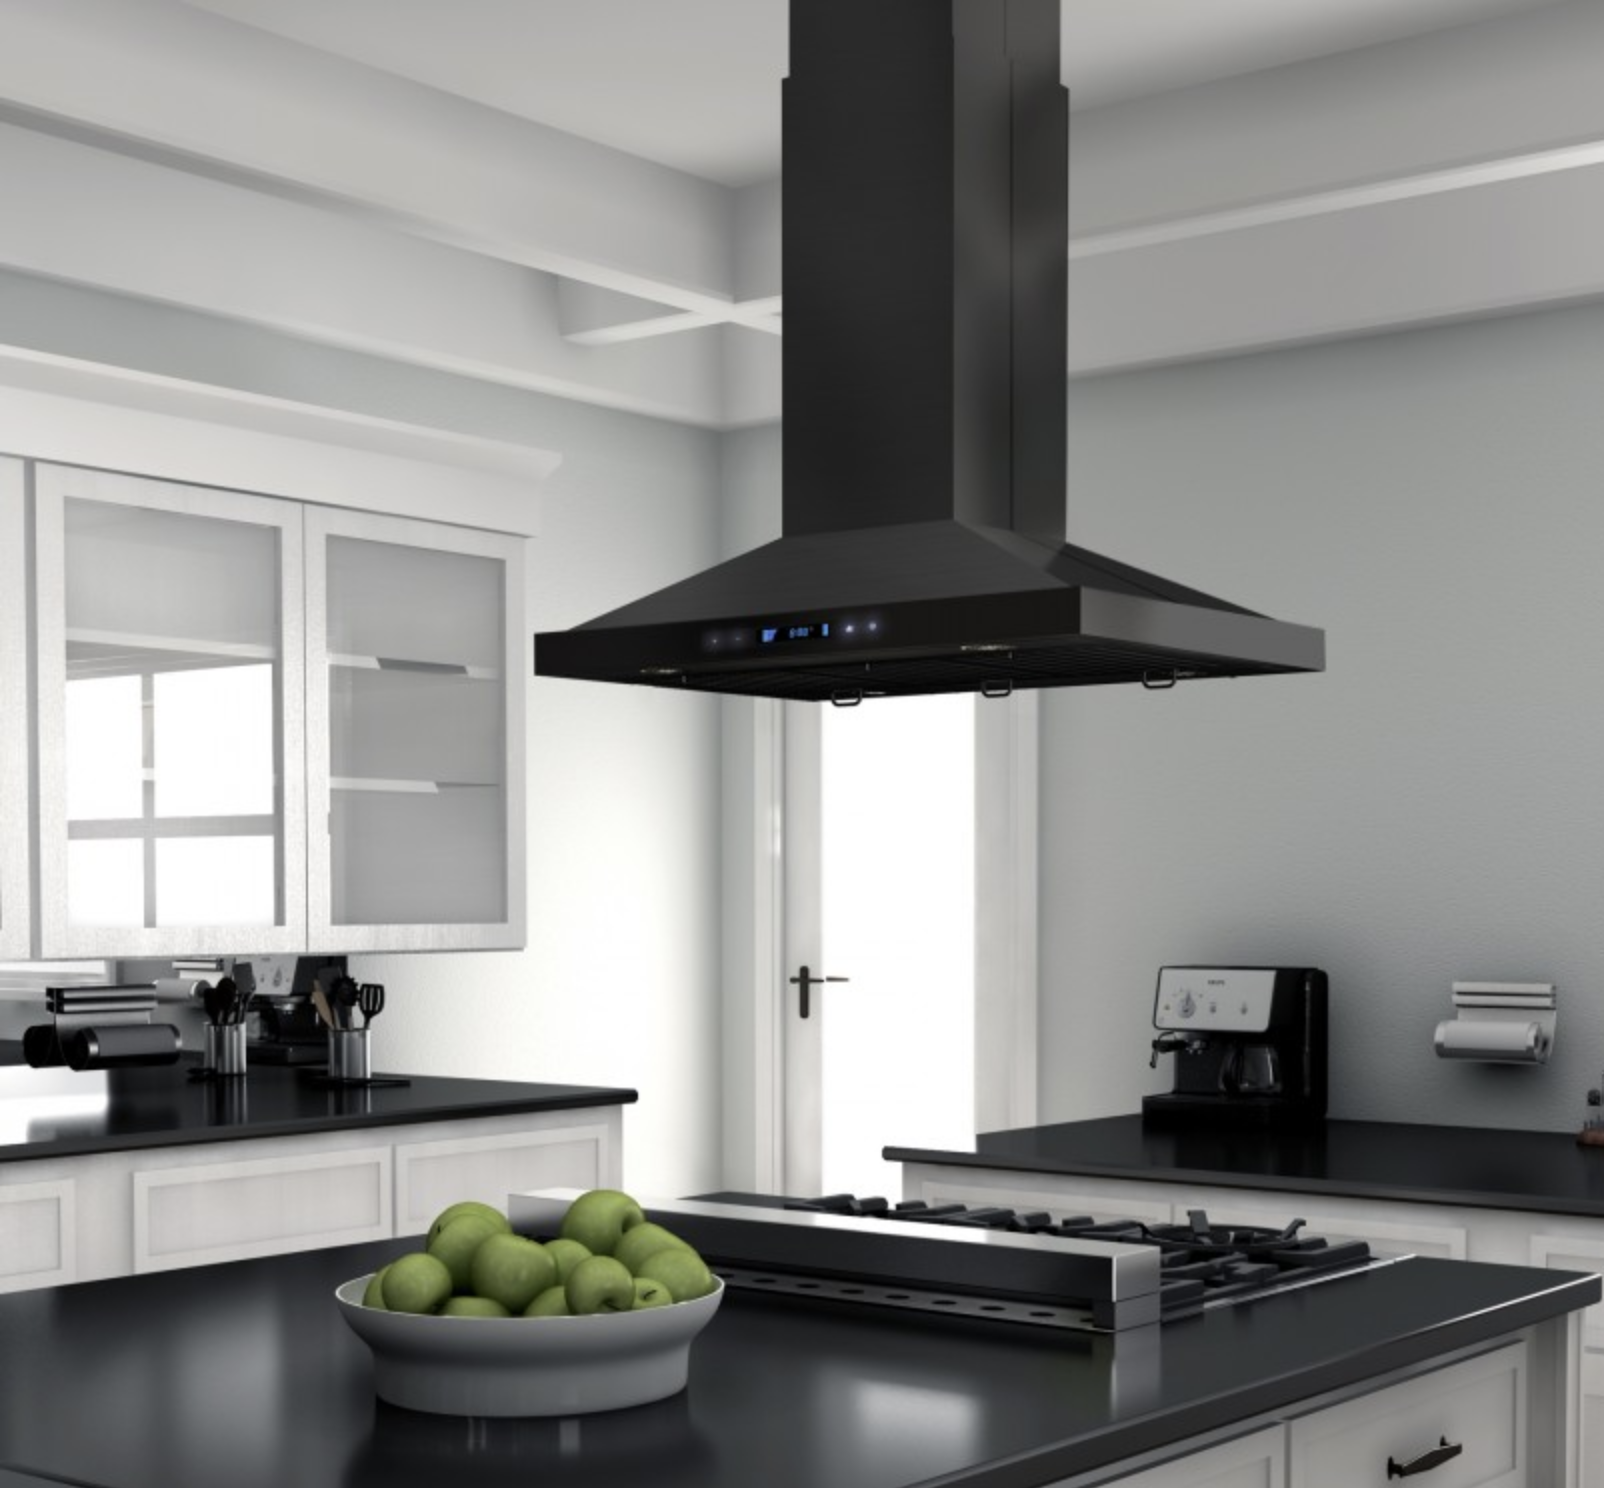 Zline 30 In 760 Cfm Island Mount Range Hood In Black Stainless Steel Range Hood Sleek Kitchen Black Stainless Steel